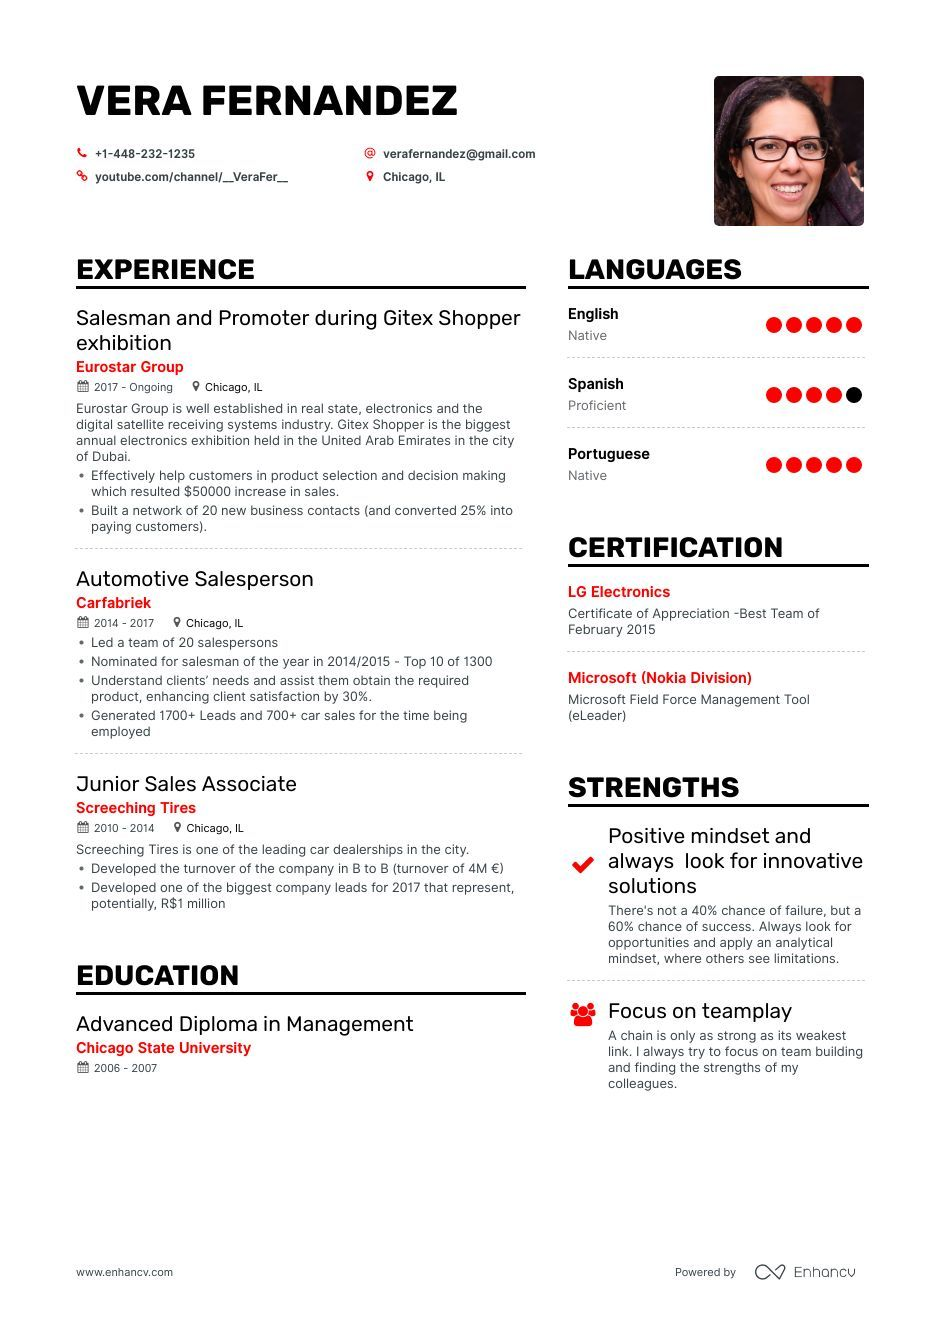 The Best Car Salesman Resume Examples & Skills to Get You